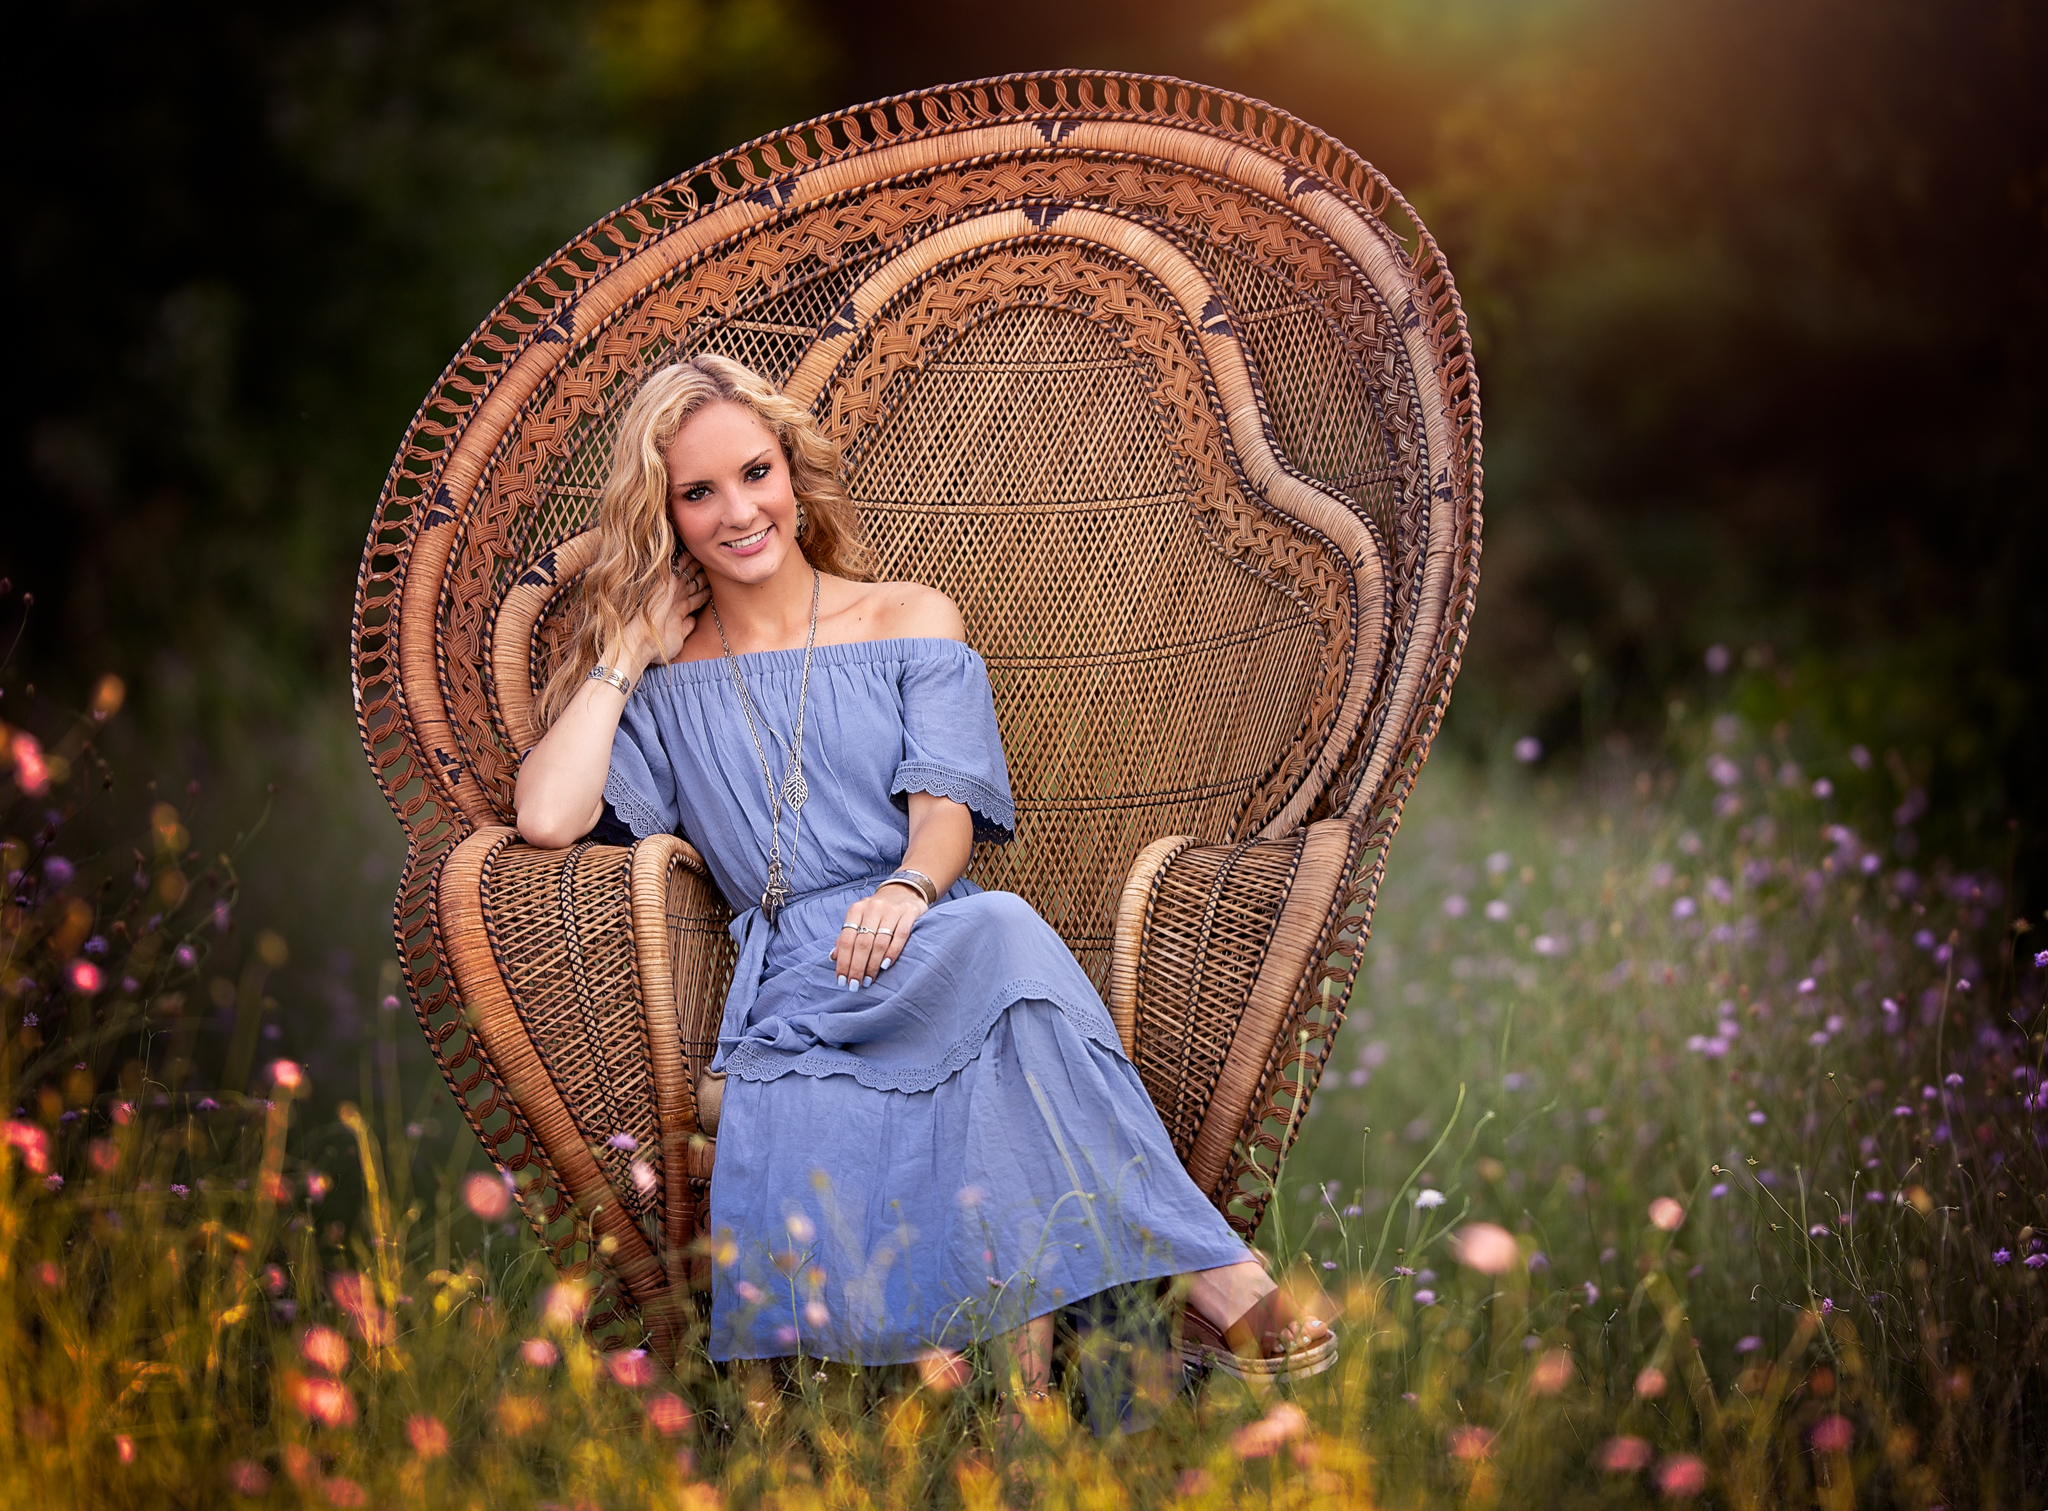 Senior Photo with peacock chair